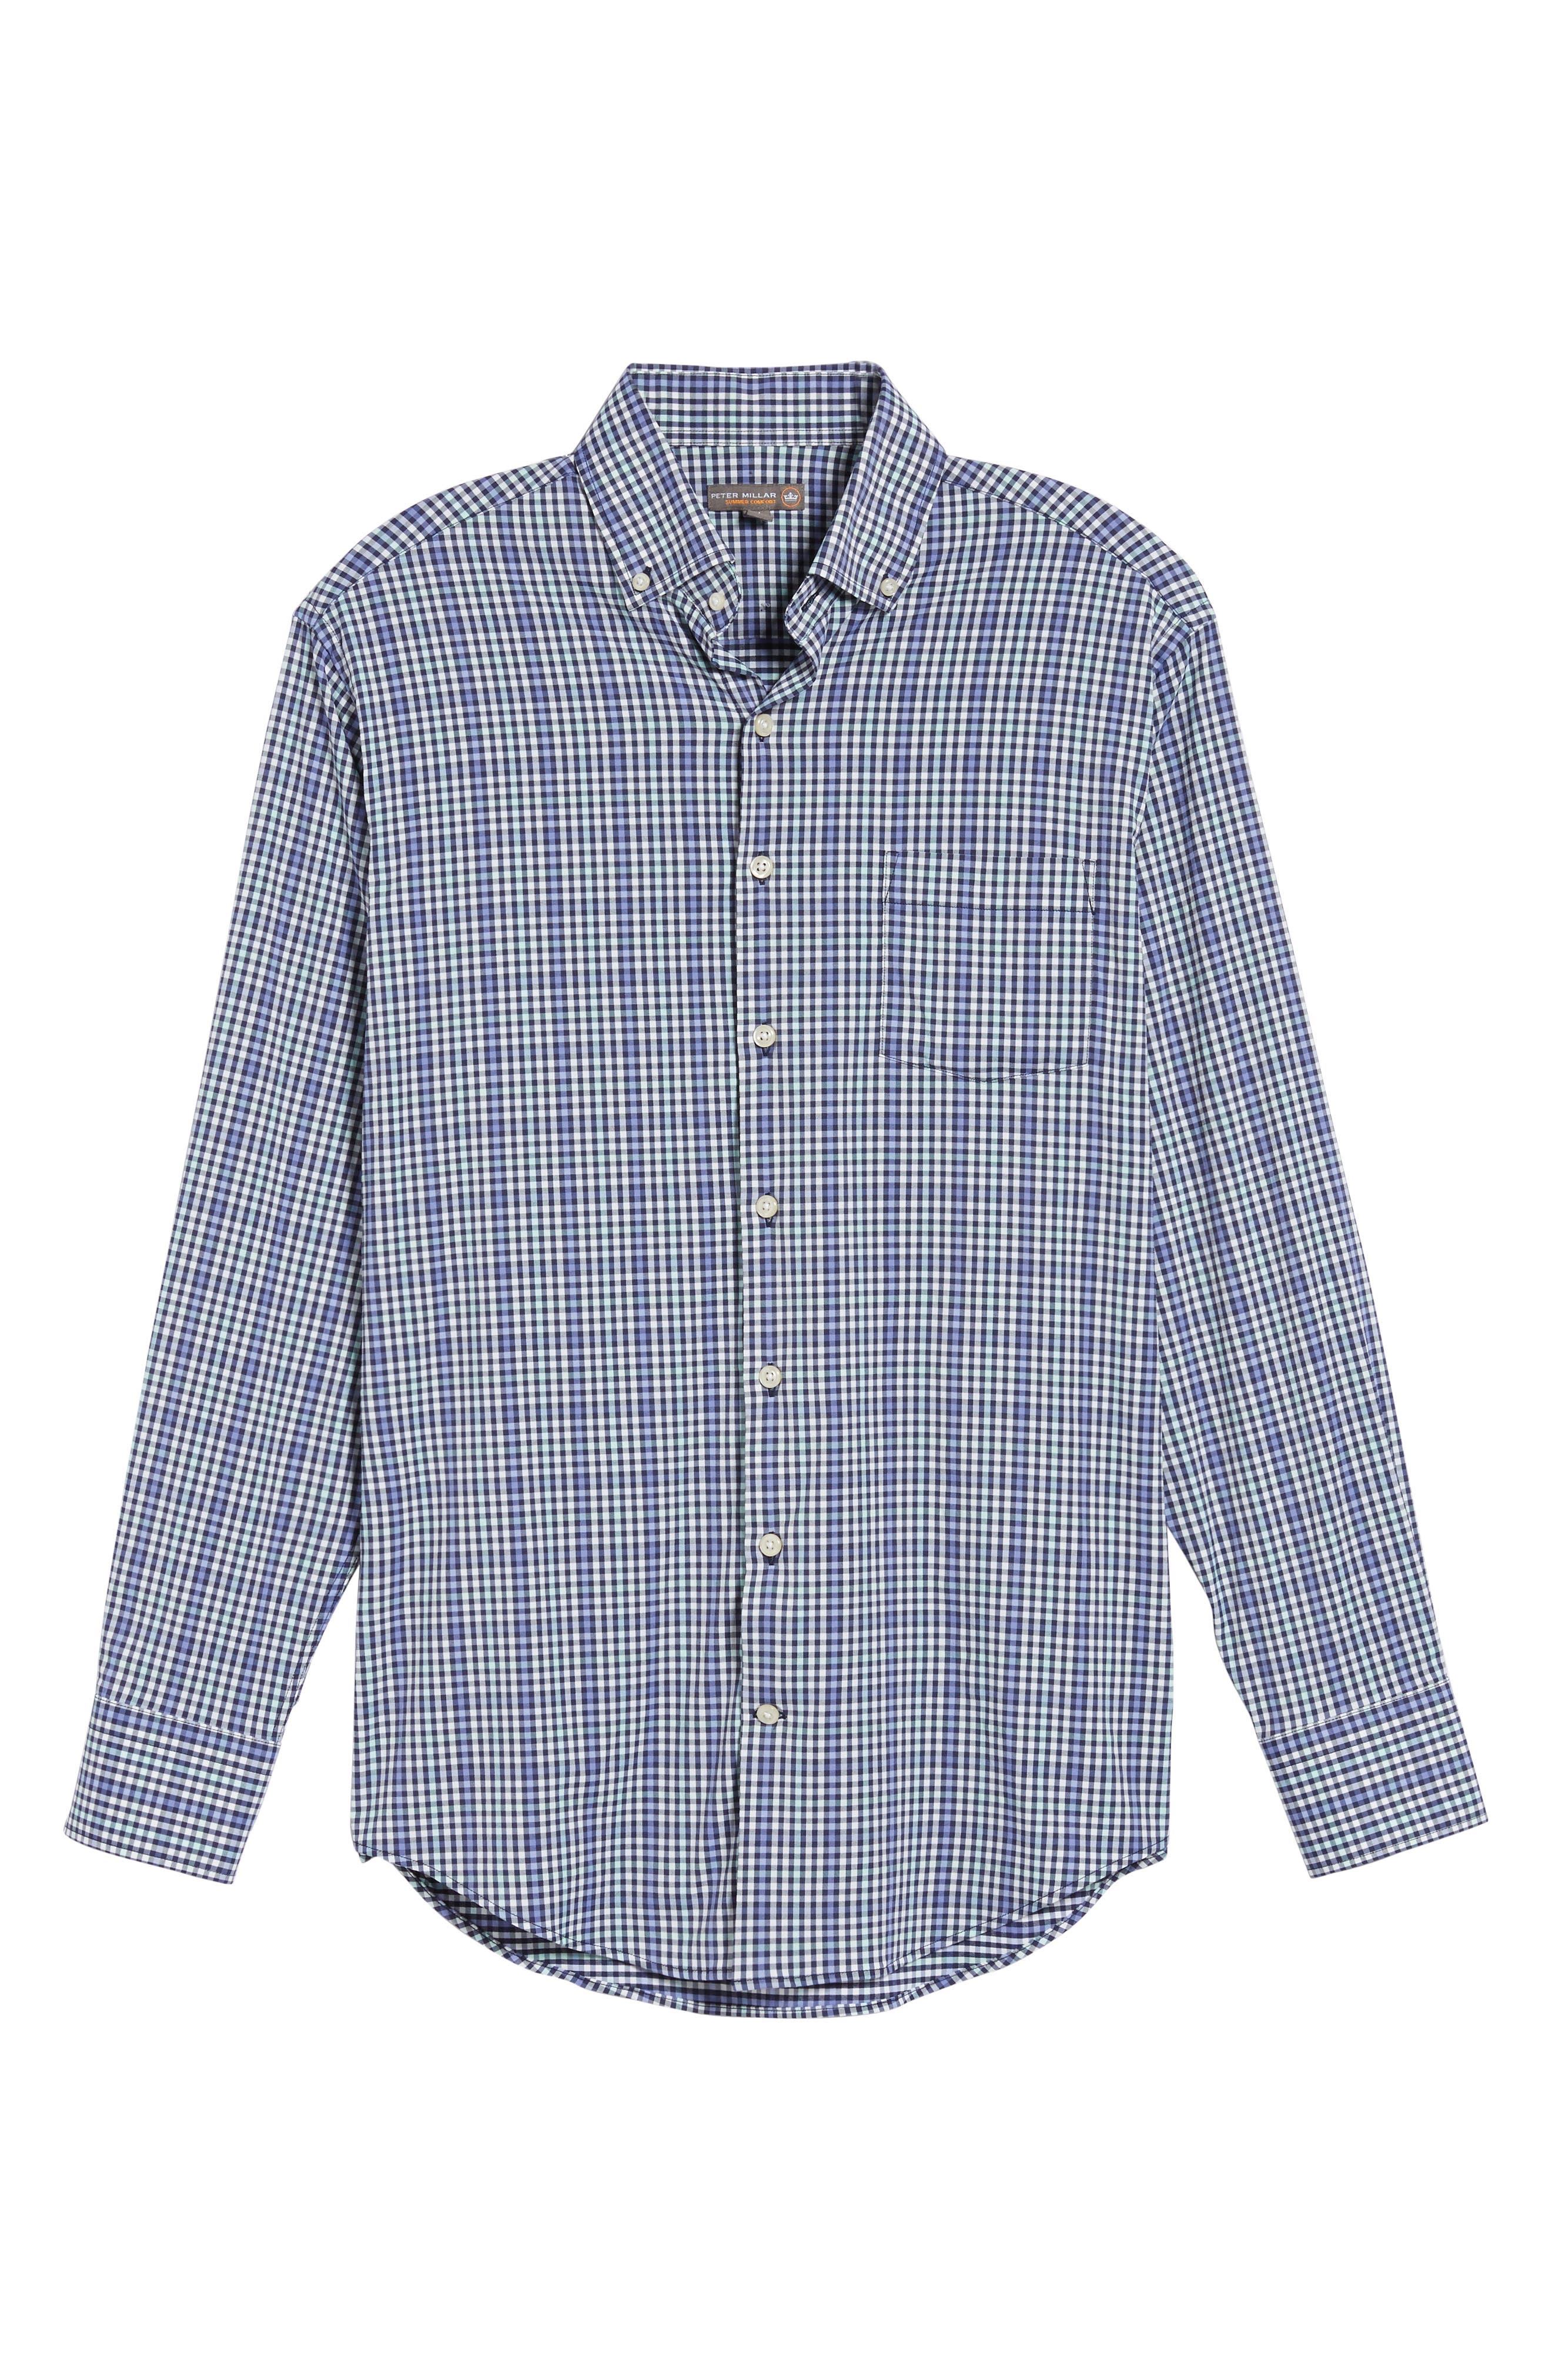 Classic Fit Collier Plaid Performance Sport Shirt,                             Alternate thumbnail 6, color,                             Thunderbird